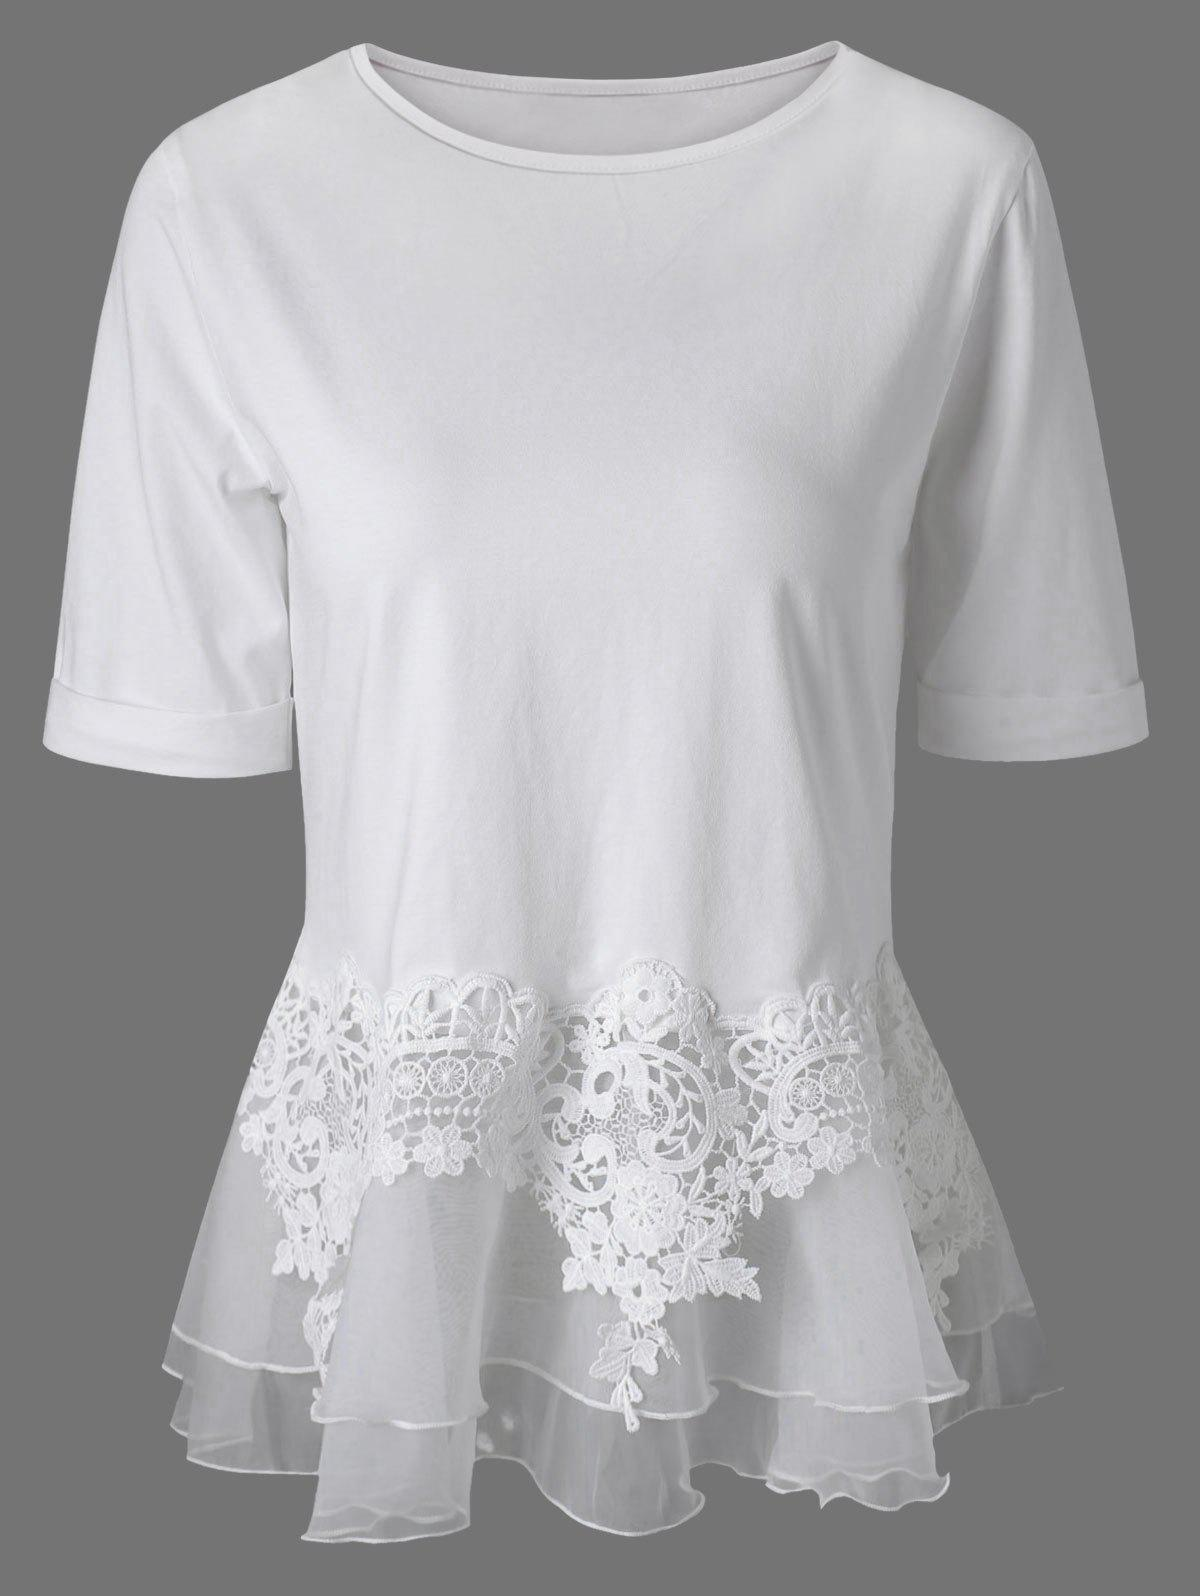 White 2xl Lace Splicing Layered Peplum Blouse